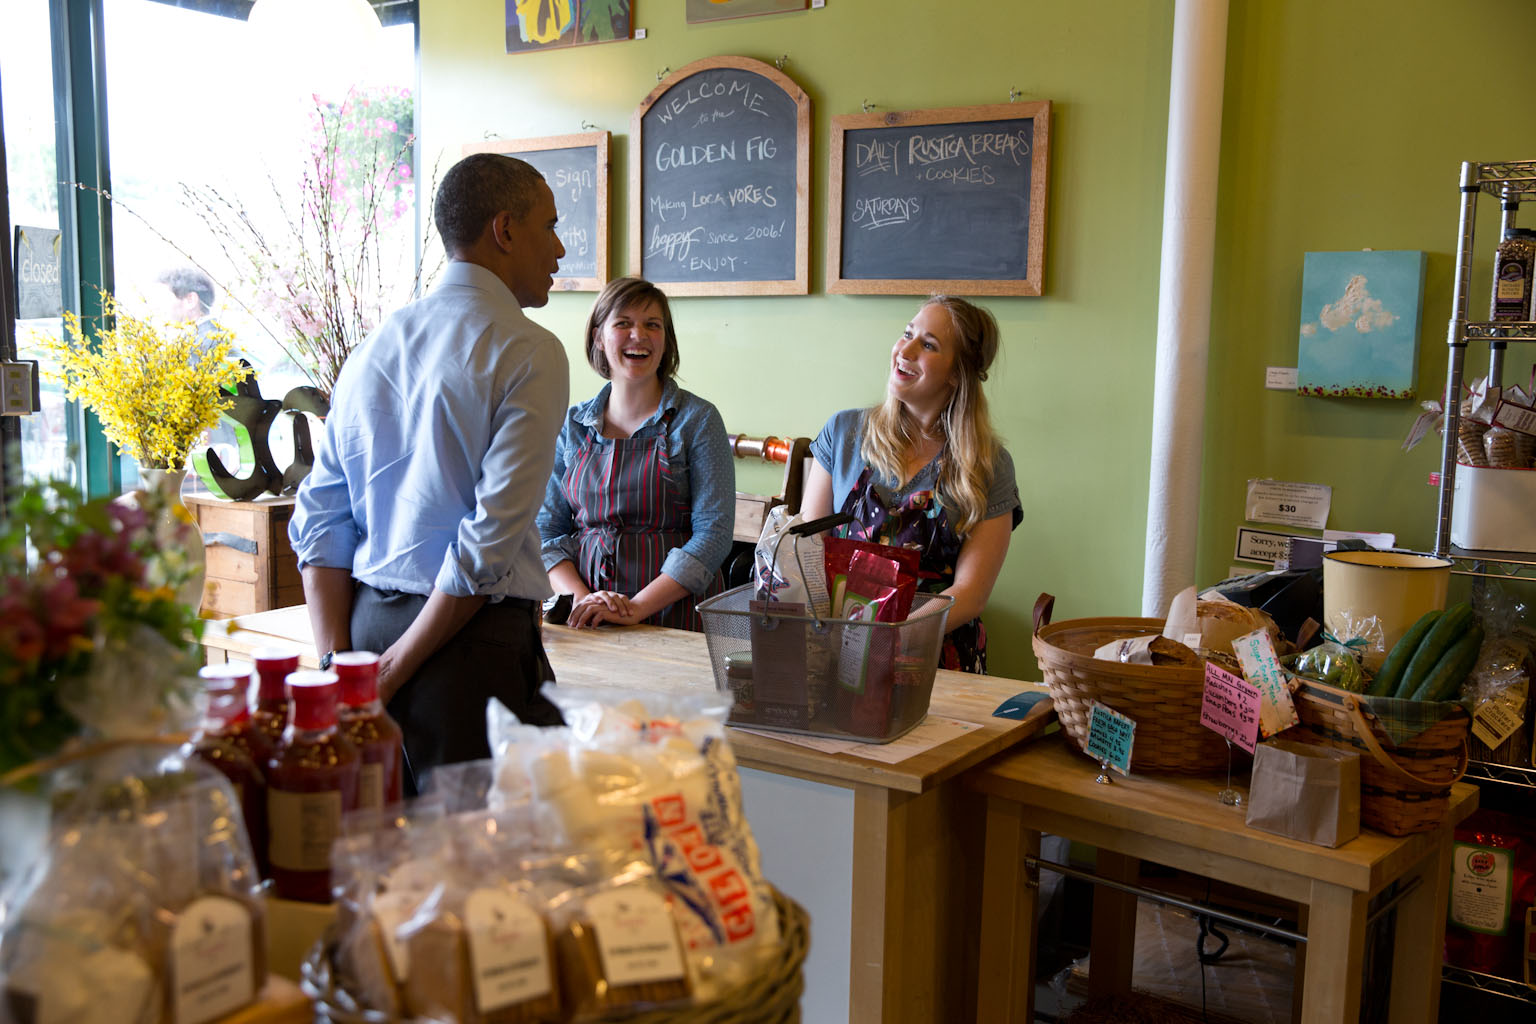 President Barack Obama talks with staff during a stop at the Golden Fig in St. Paul, Minn., June 26, 2014.